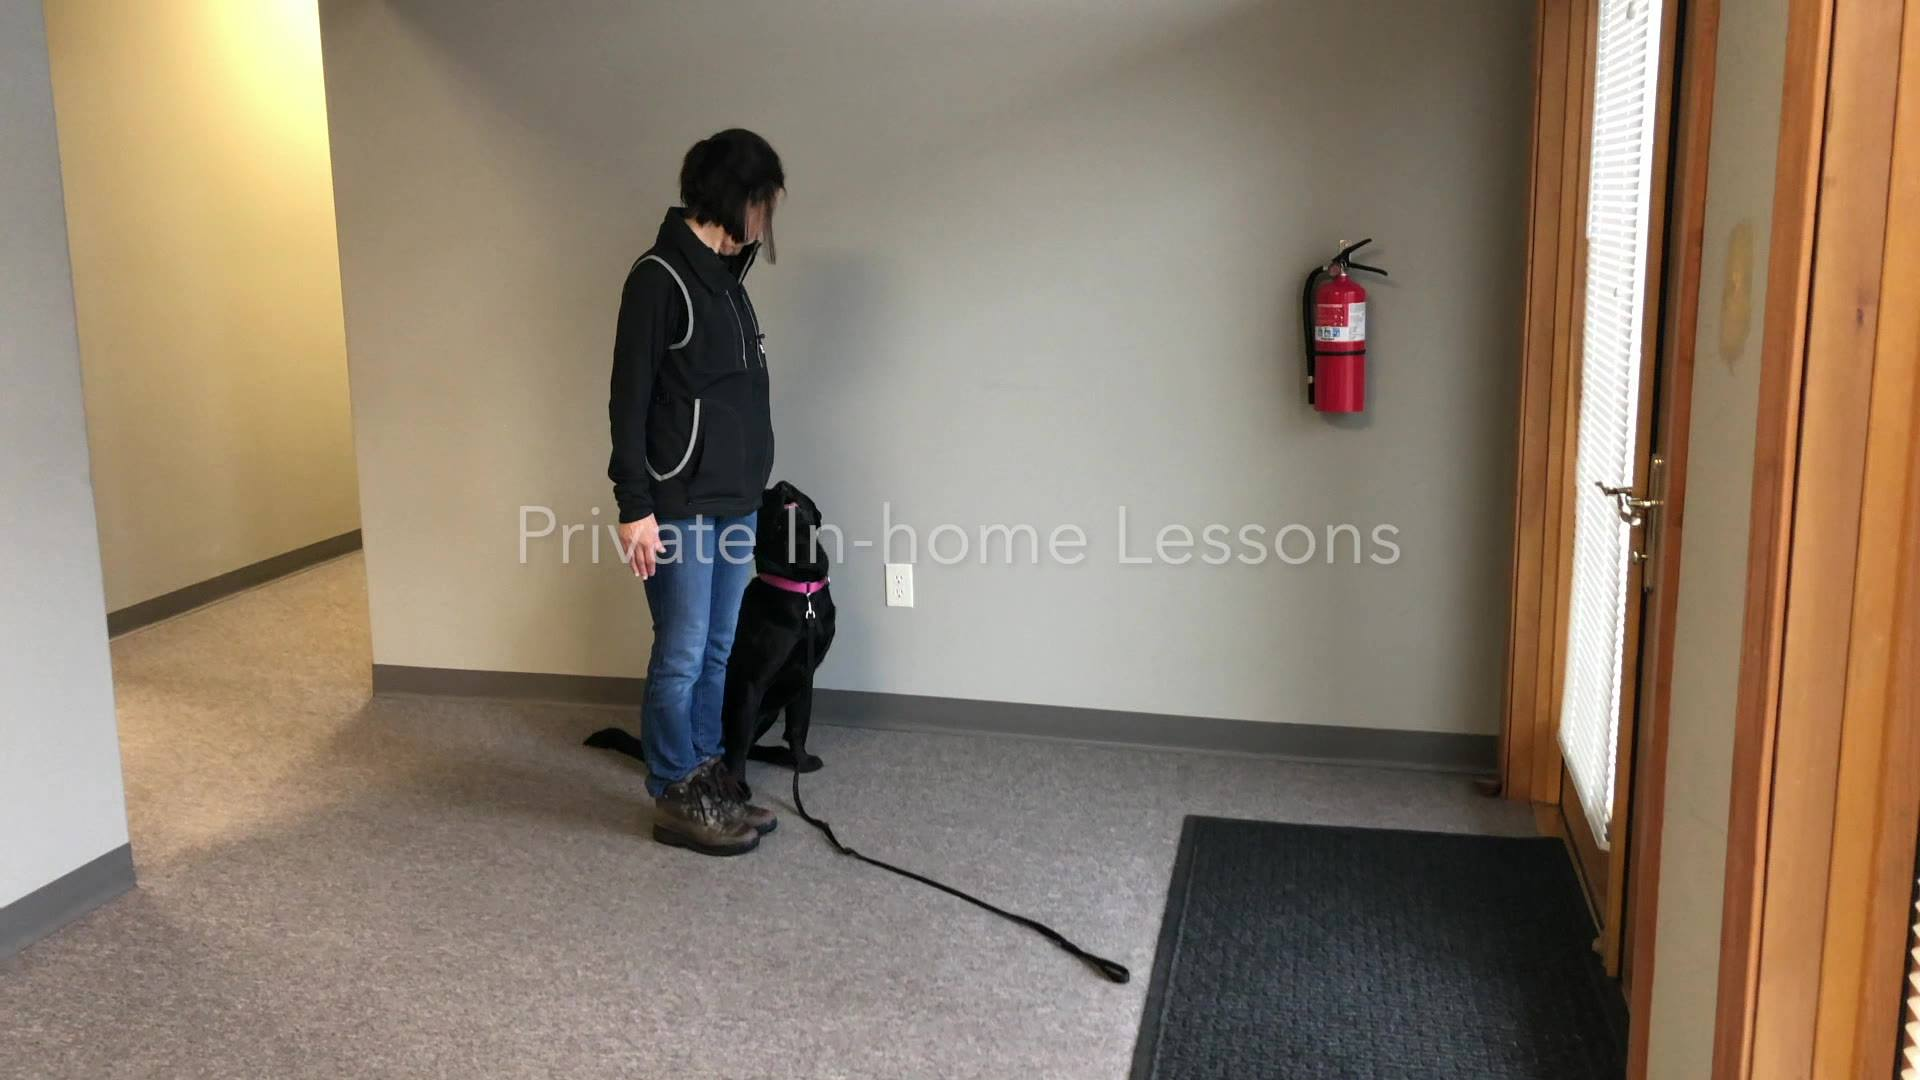 Private In-home dog training lessons